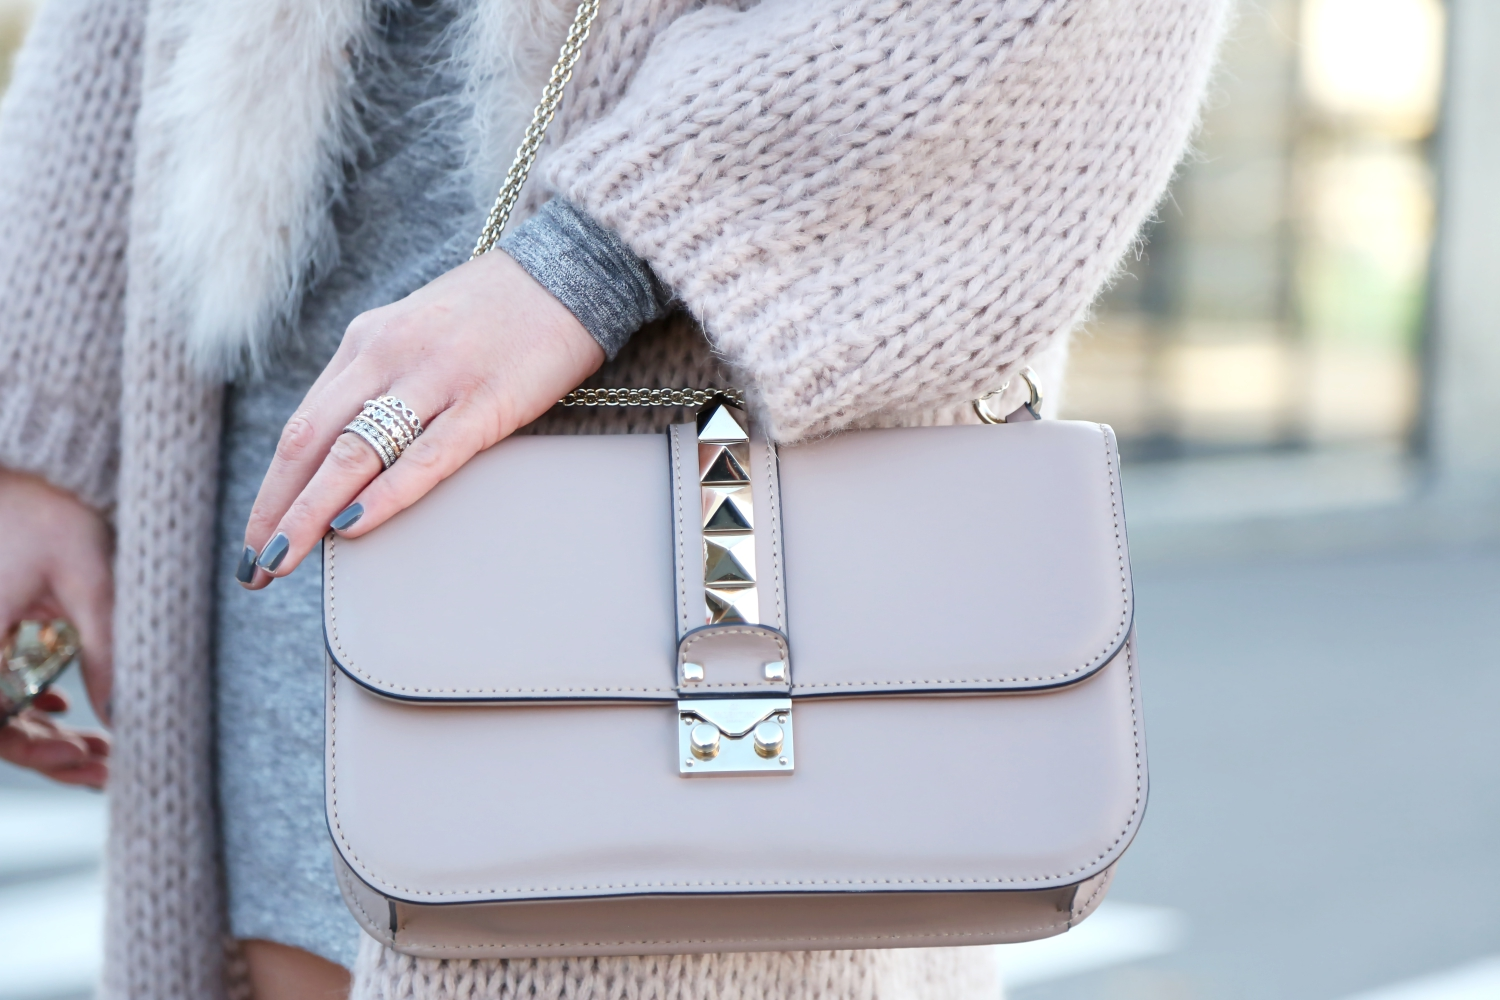 outfit-details-valentino-glam-lock-bag-pandora-rings